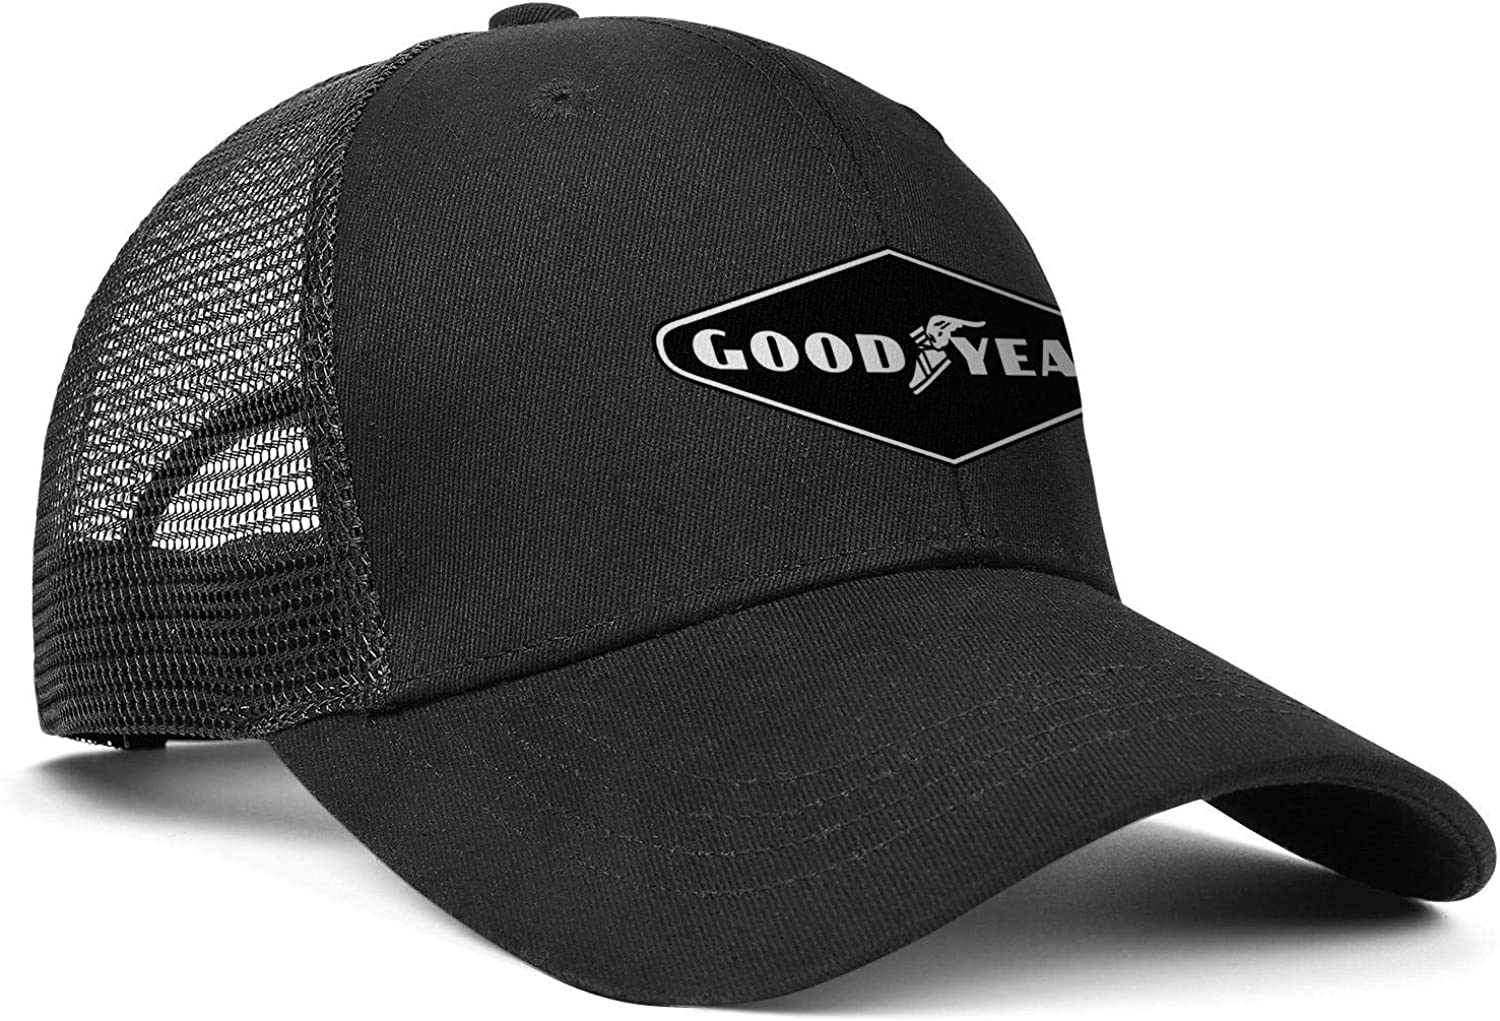 Goodyear-Tire-and-Rubber-Compa Mens Womens Mesh Back Ball Caps Youth Visor Hats